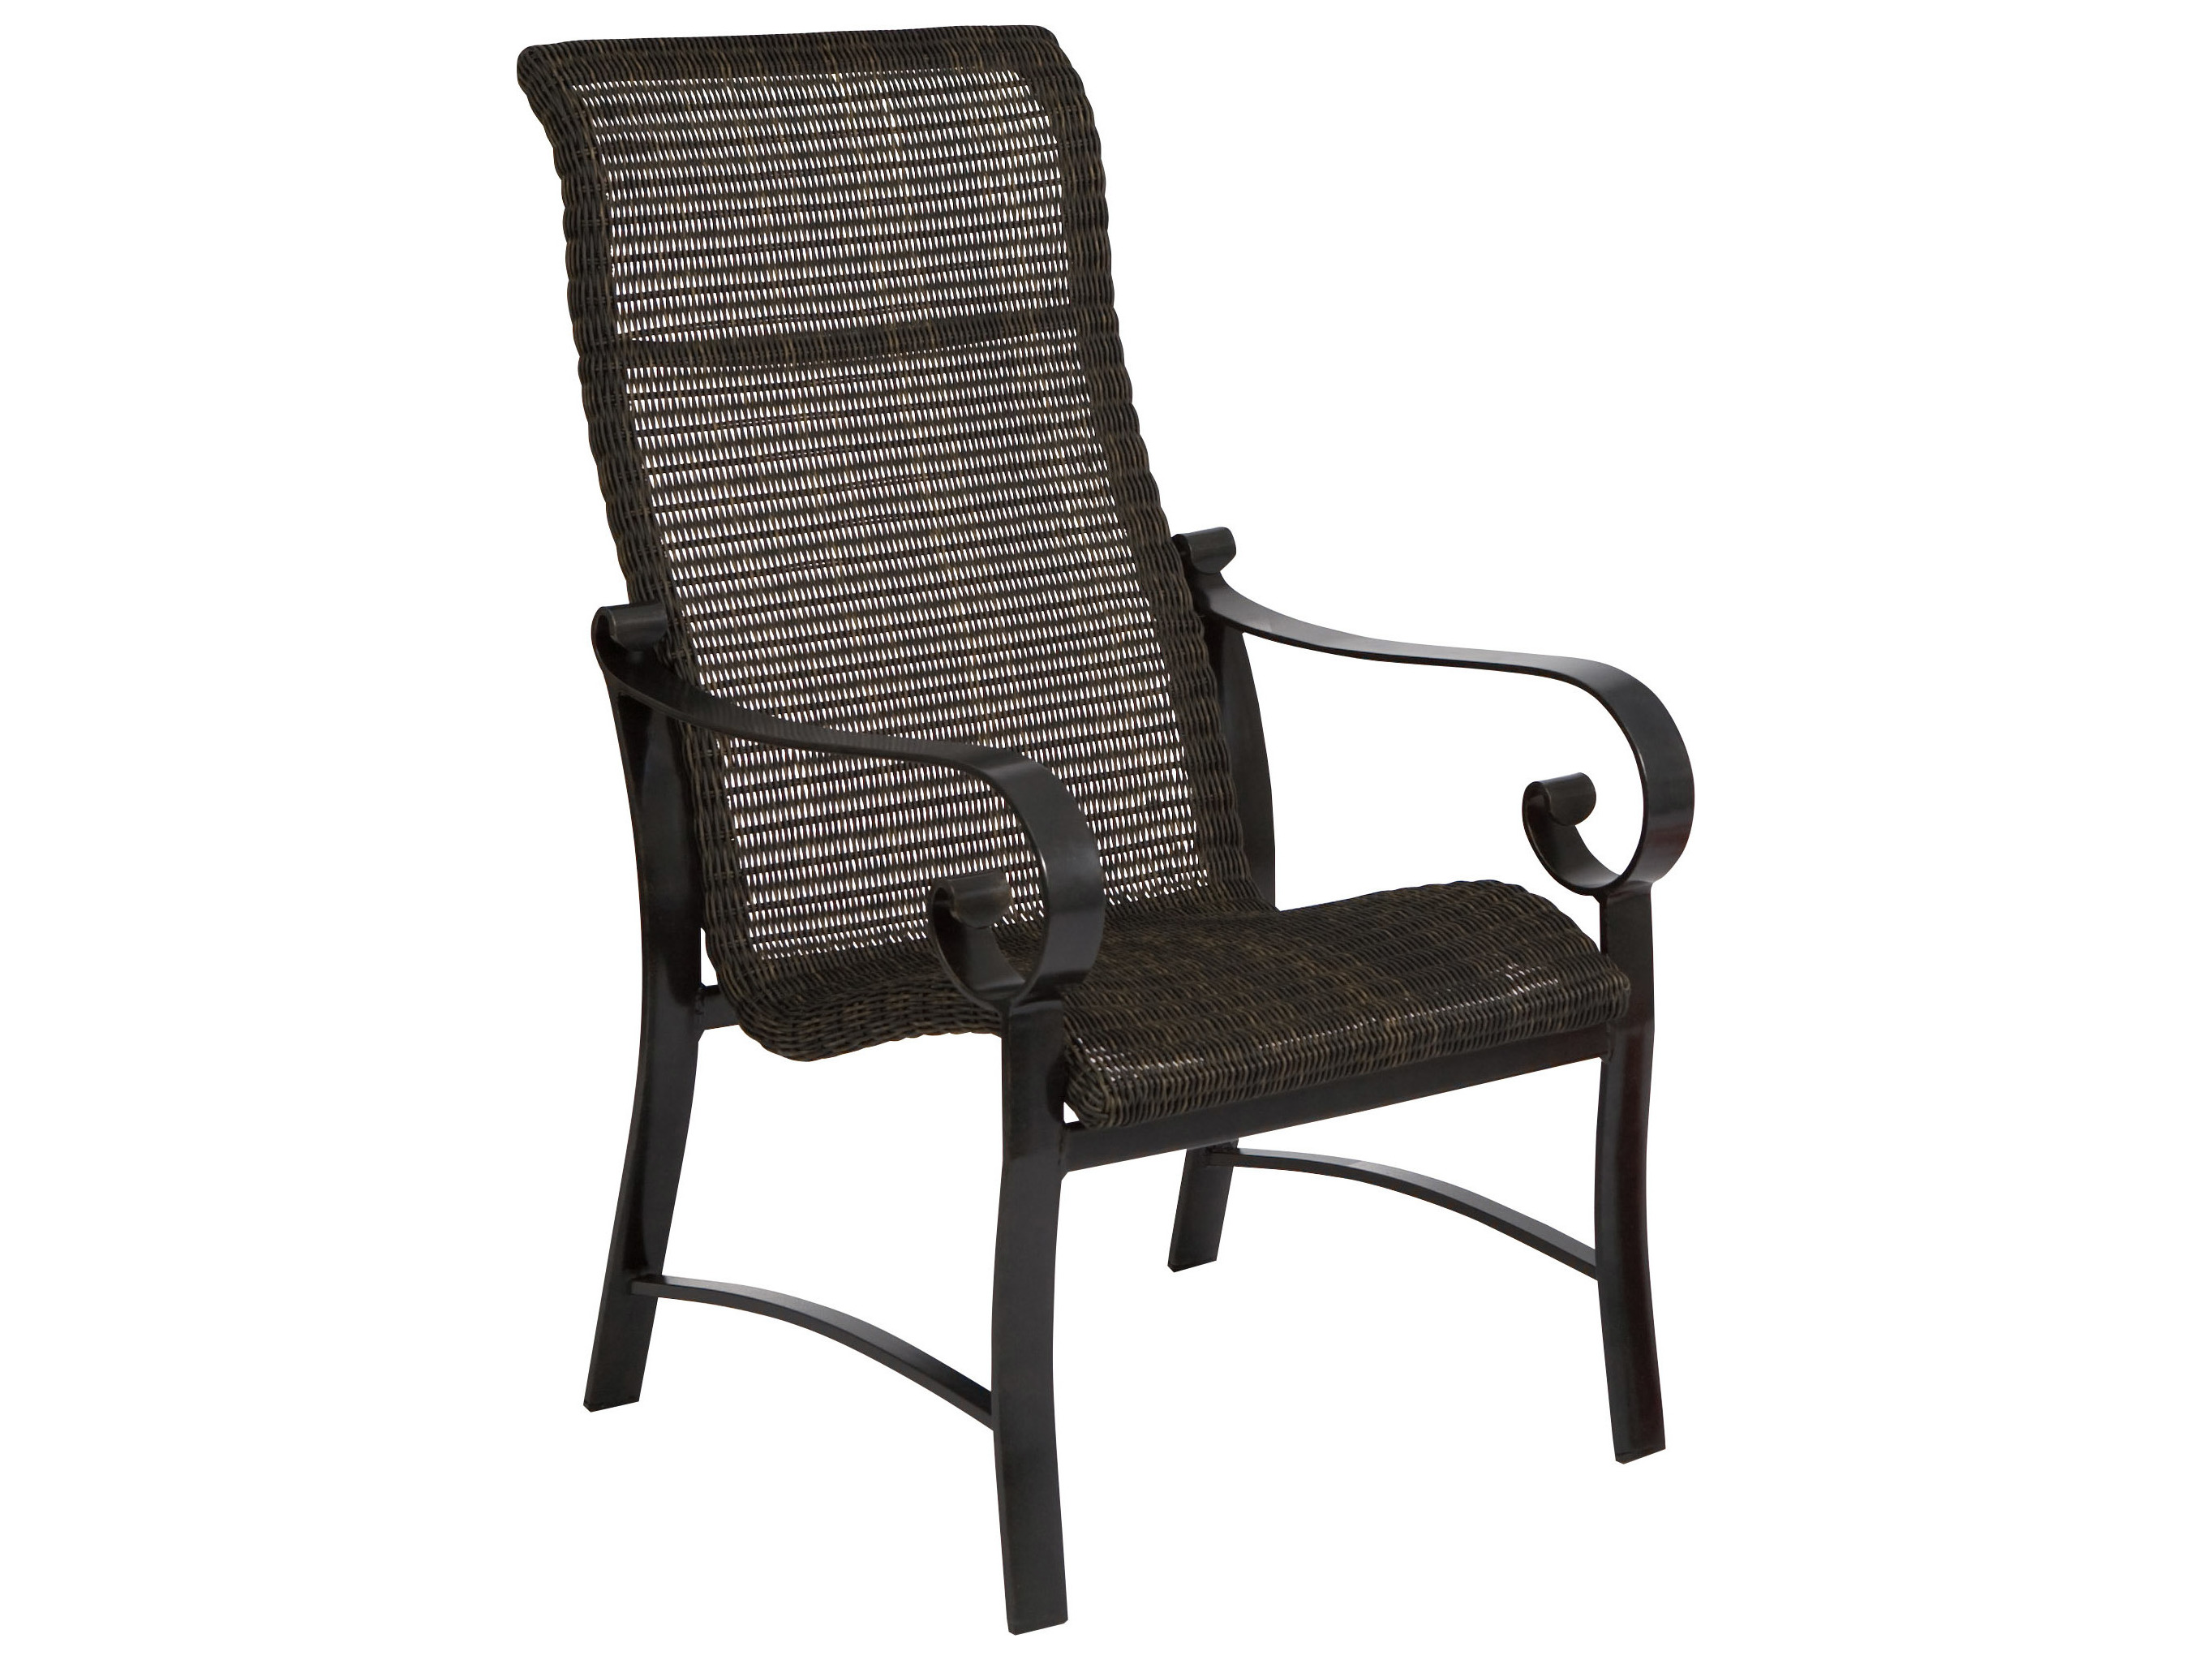 round wicker chair name steelcase leap v2 review woodard belden woven weave hi back dining